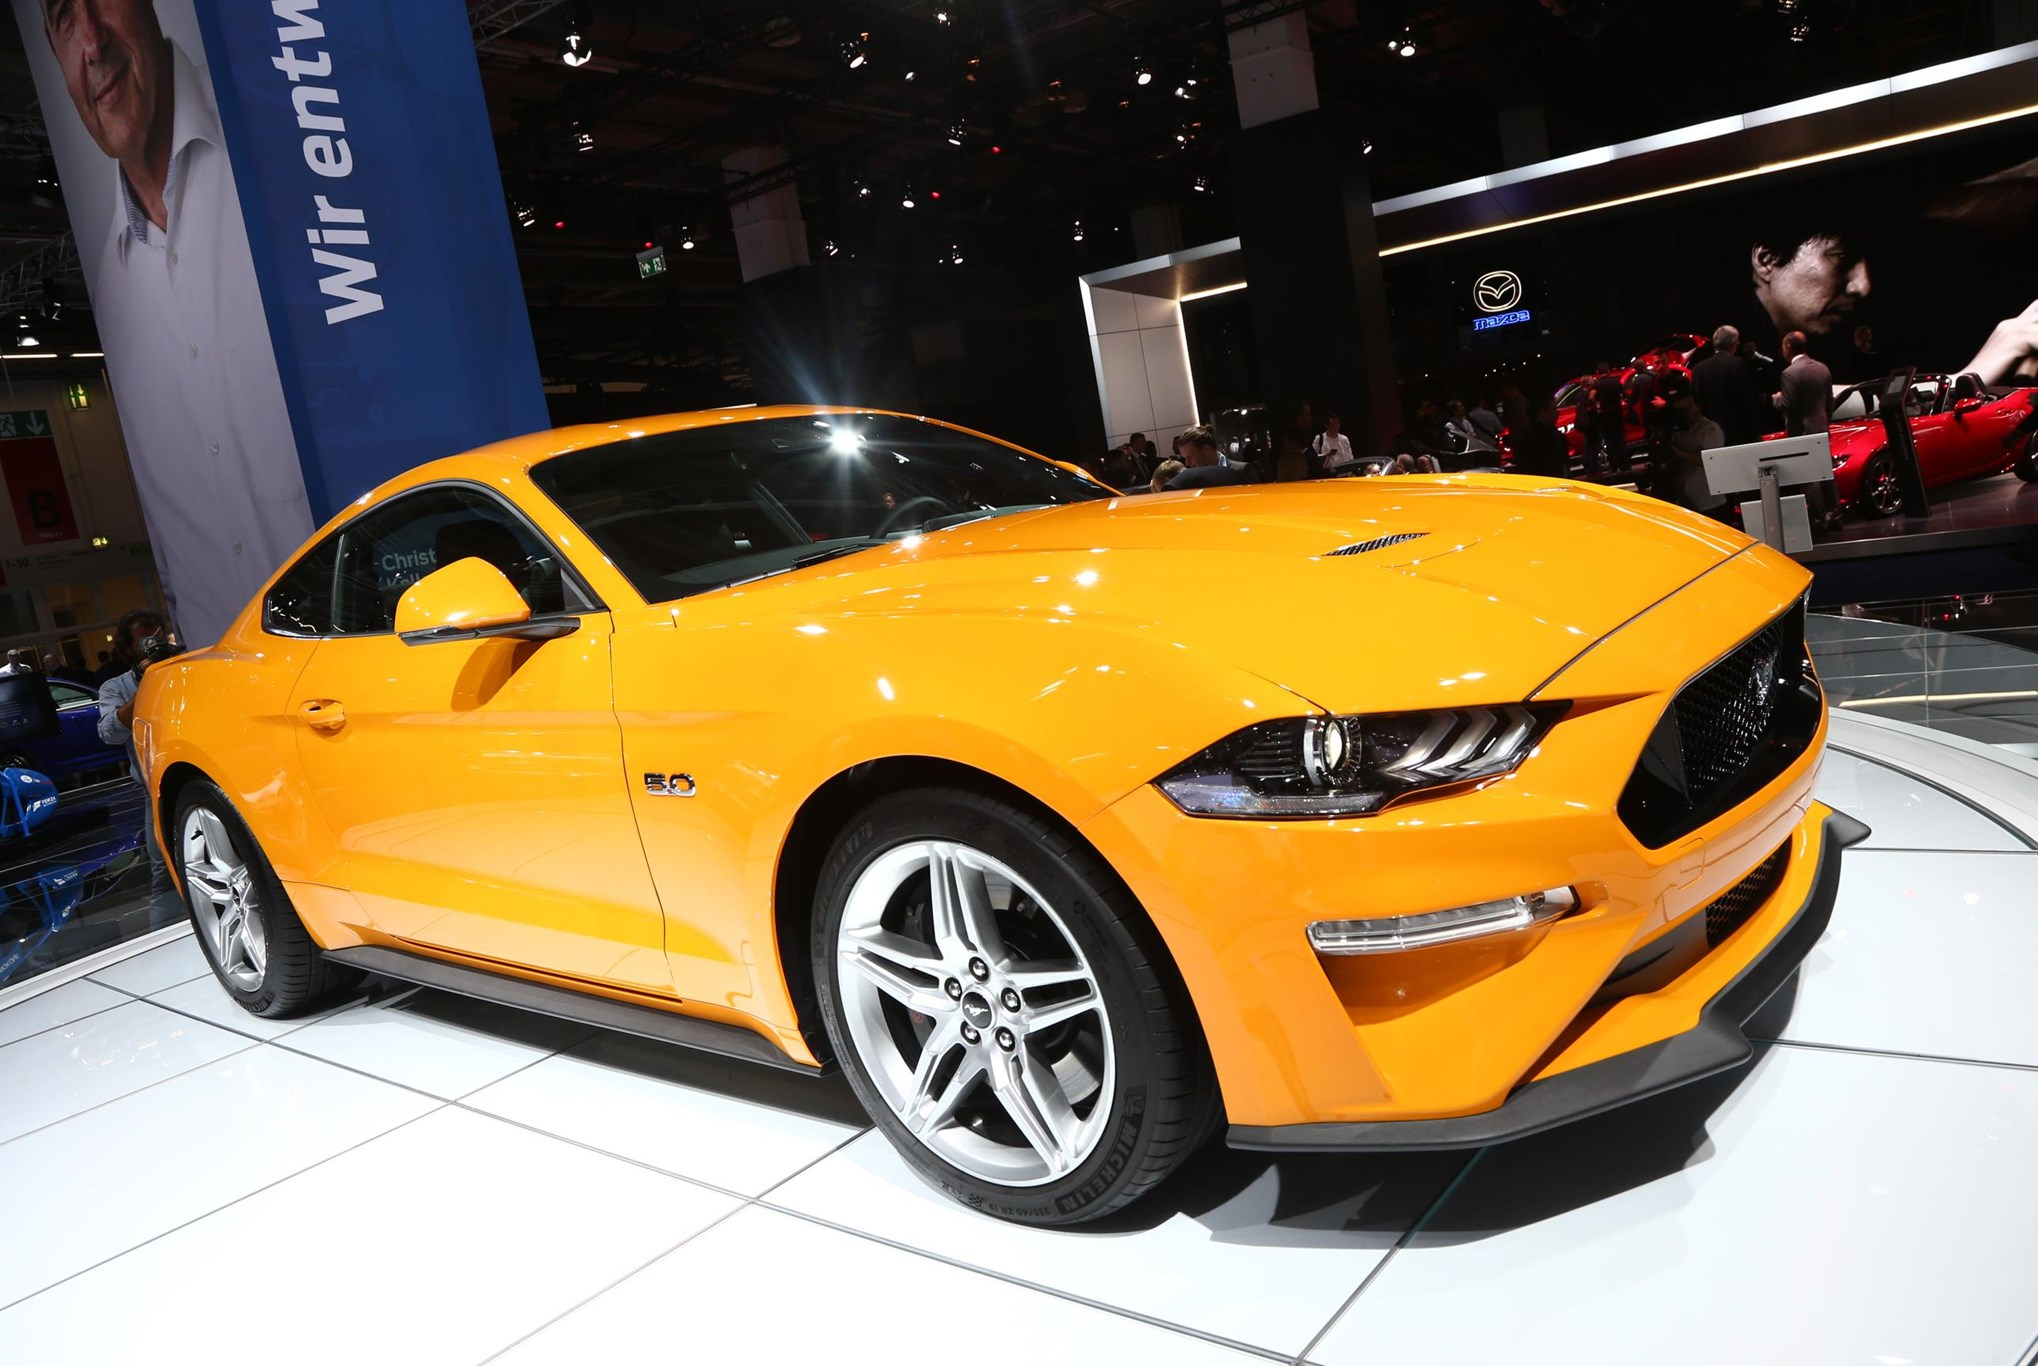 Release Date  Ford Mustang Gt Lease Cars Sport Specs  Ford Mustang Gt Lease Cars Specs Info Learn About The Most Advanced Mustang Ever With Its